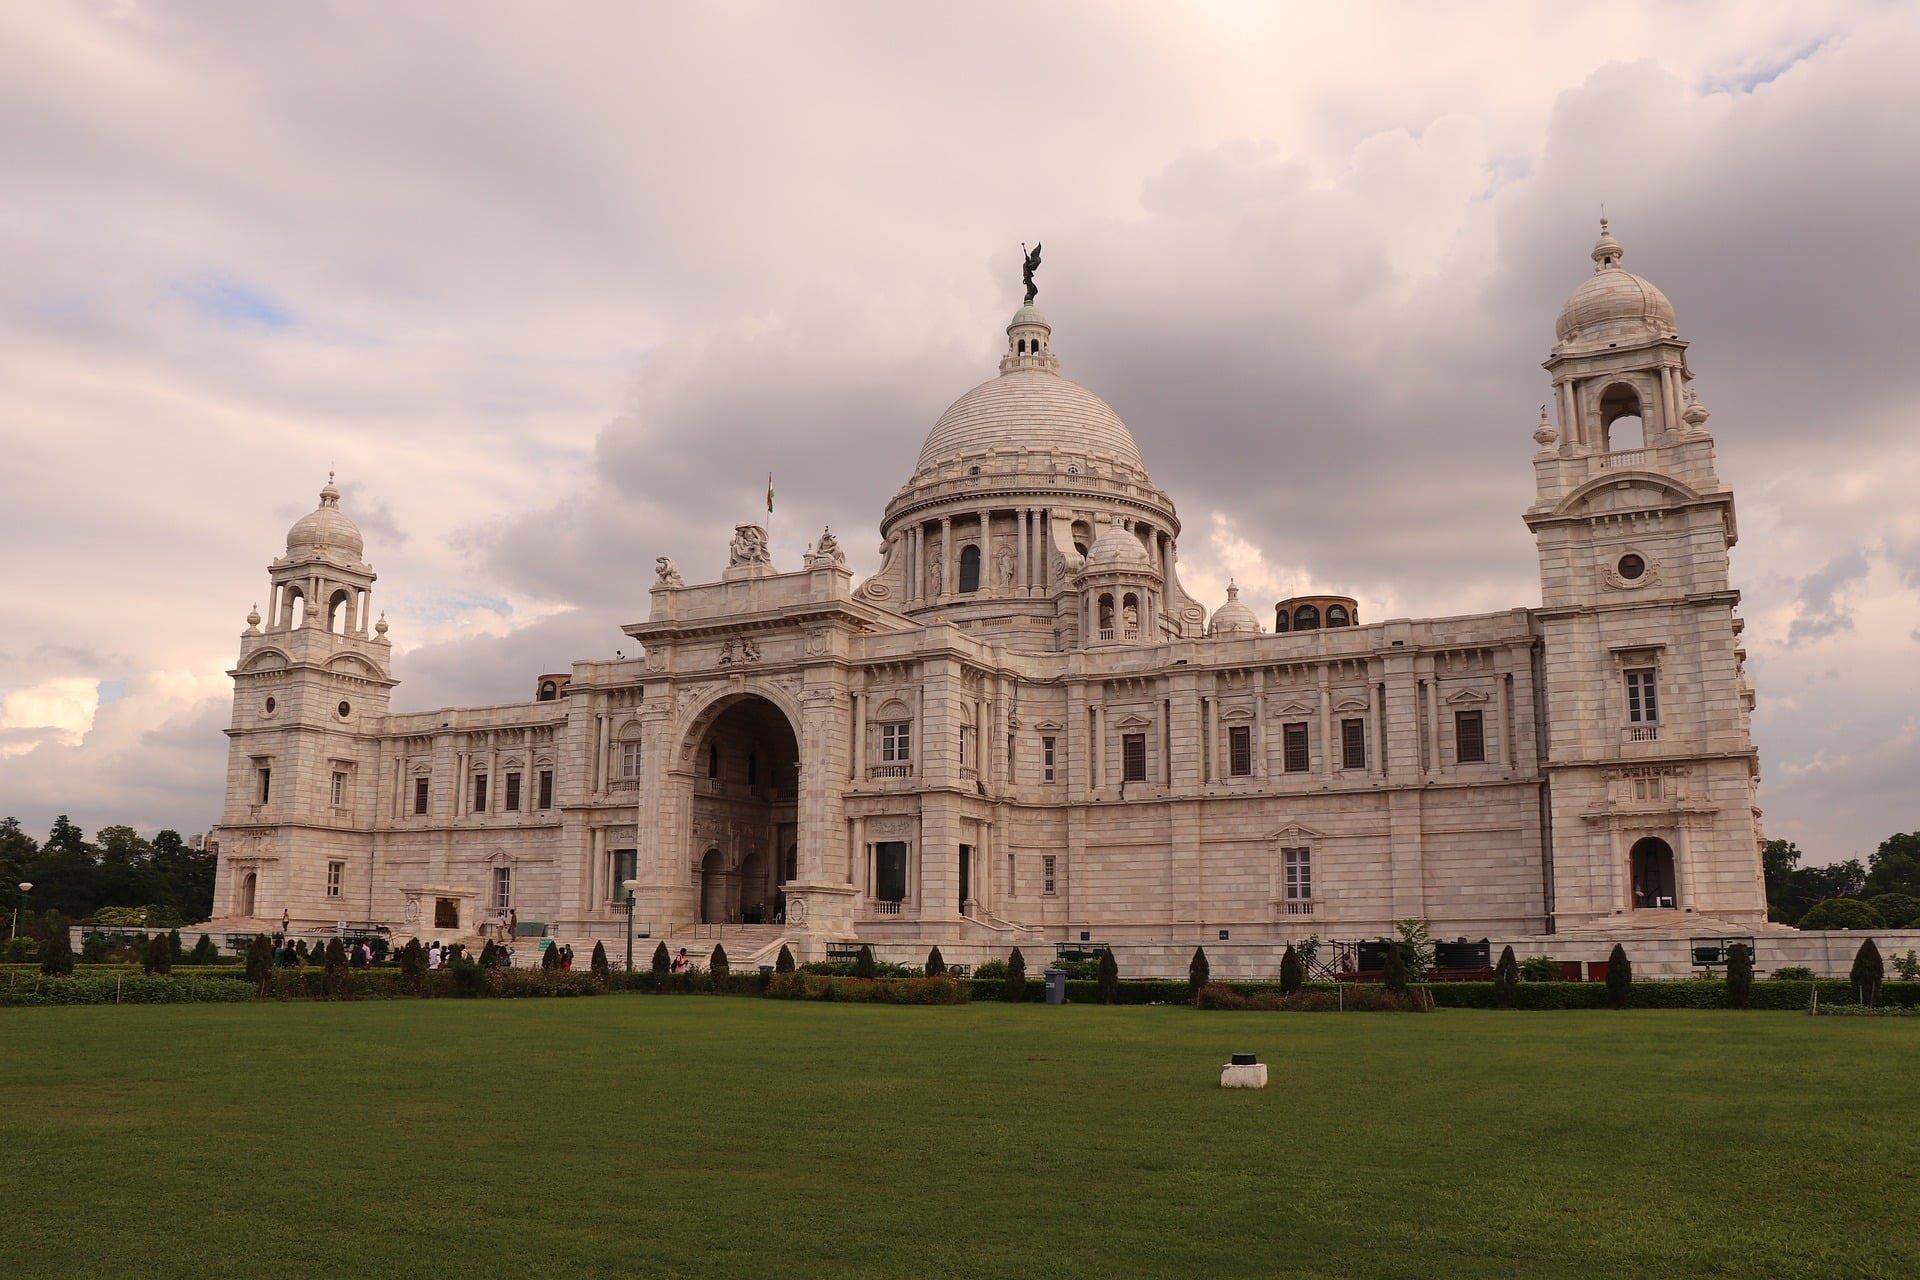 Heritage Monuments & Imperial Cities in India 1